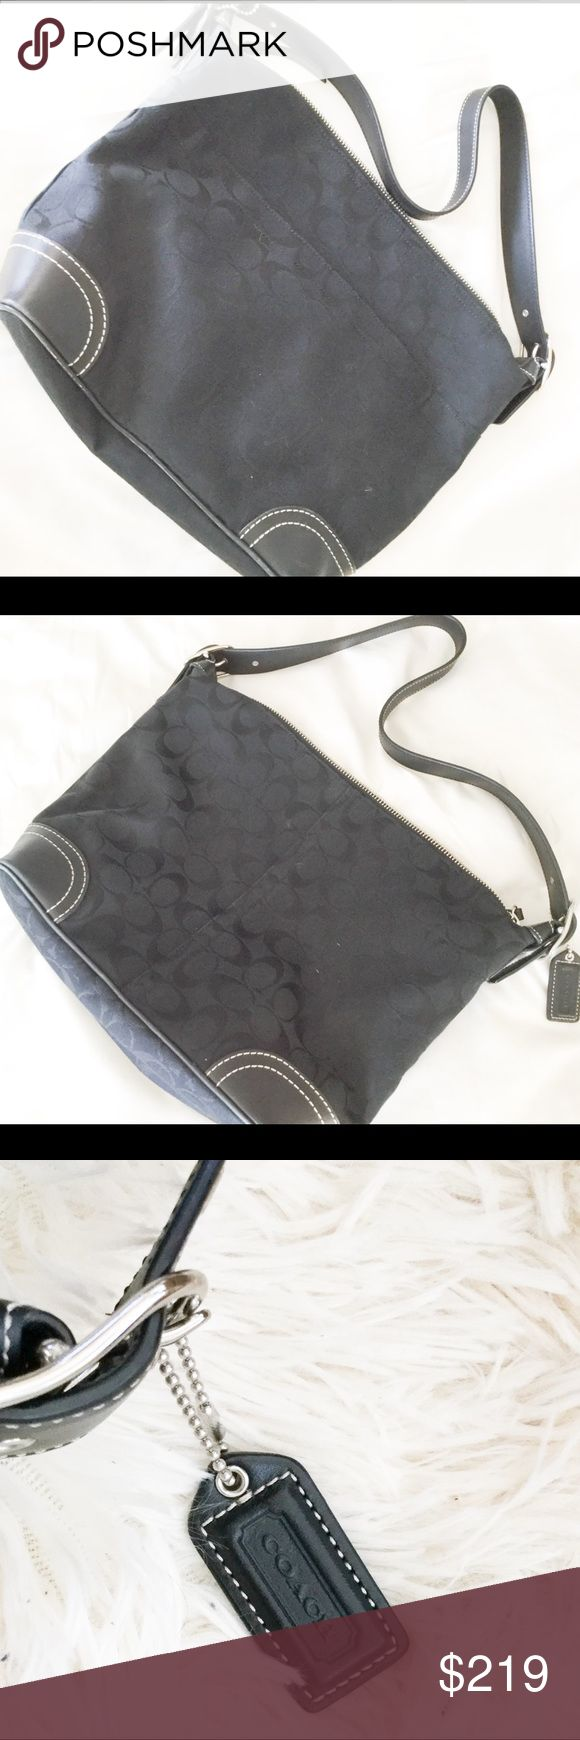 """EUC Coach signature monogram Tote Authentic Black Coach """"C"""" monogram shoulder tote medium to large sized bag. Adjustable shoulder strap, silver hardware, inside zip pocket, two slip pockets. Interior is spotless with coach creed and cereal number. Coach hang tag on outside of bag. Slight skuffs on two of the corners, other than that bag is mint. Approximate Measurements: 13"""" x 10"""" x 4"""" Coach Bags Shoulder Bags"""